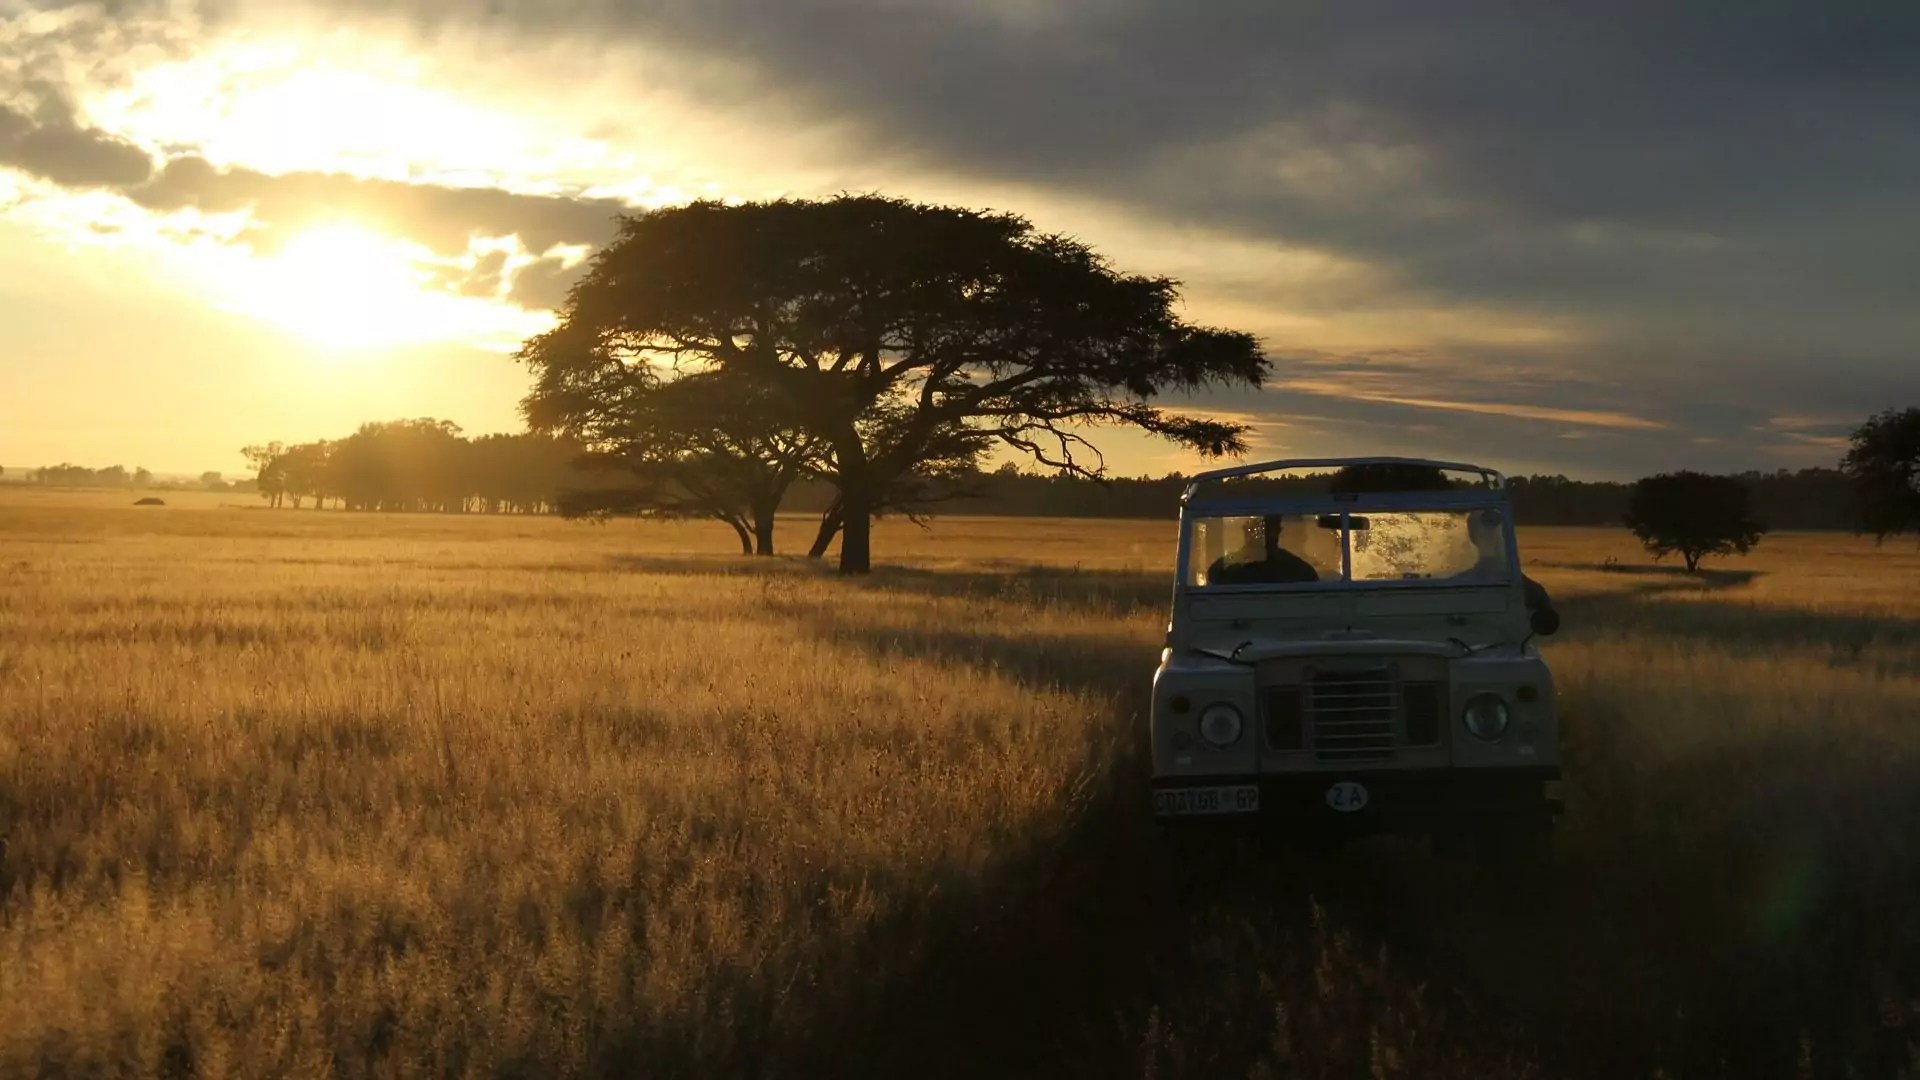 Serengeti fields and trees during sunset, as a car drives along a path.